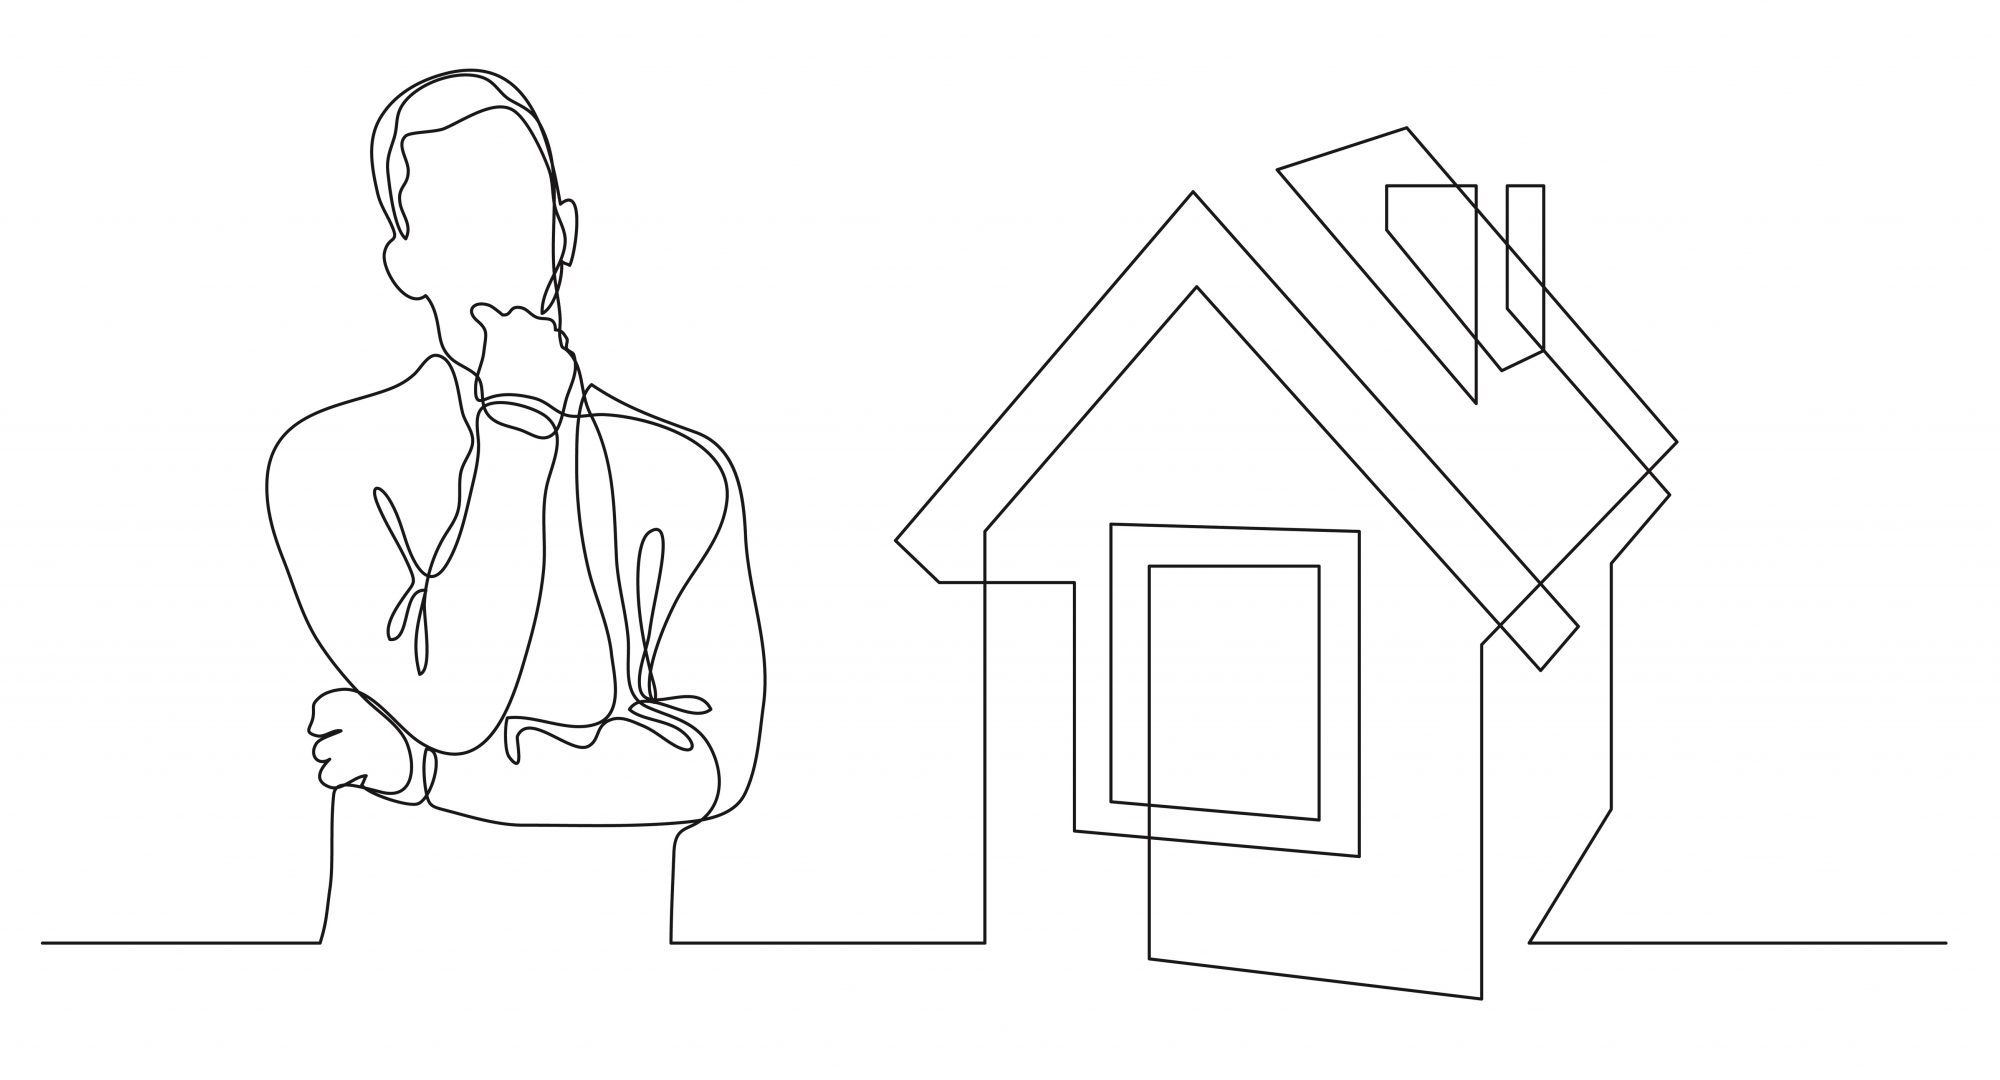 Pencil drawings of a man thinking about the house to his right